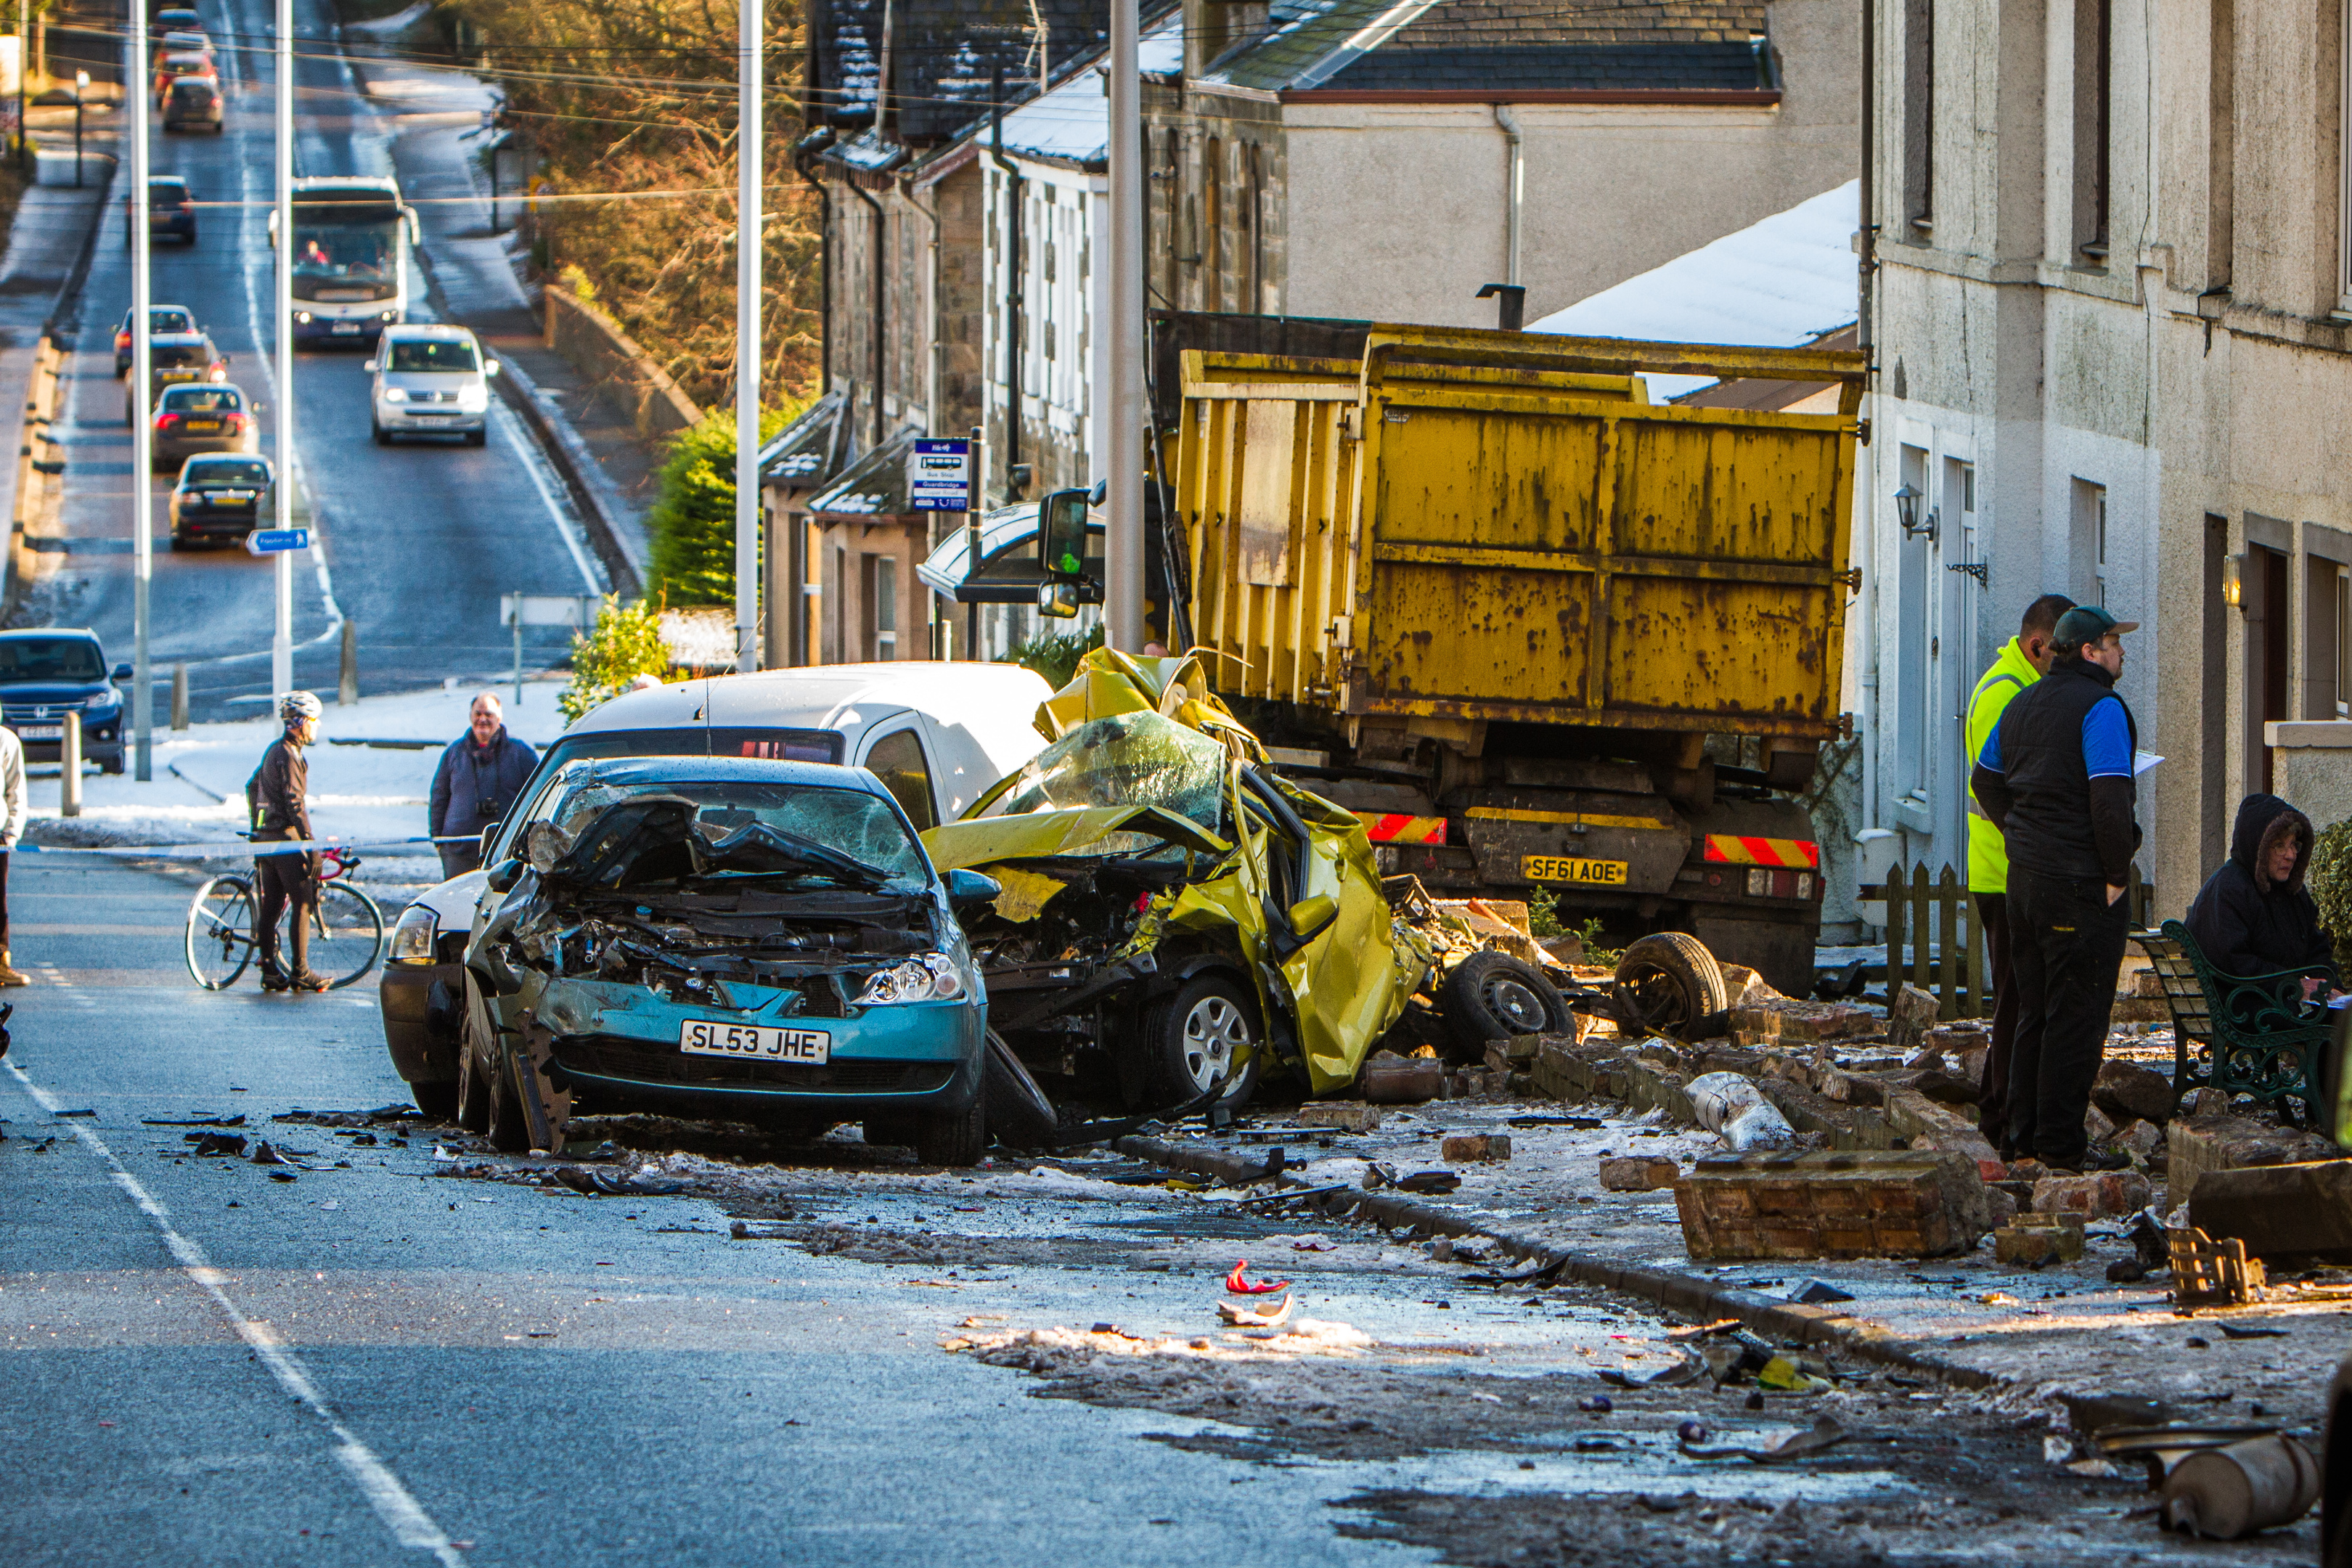 The devastating scene on Cupar Road, Guardbridge